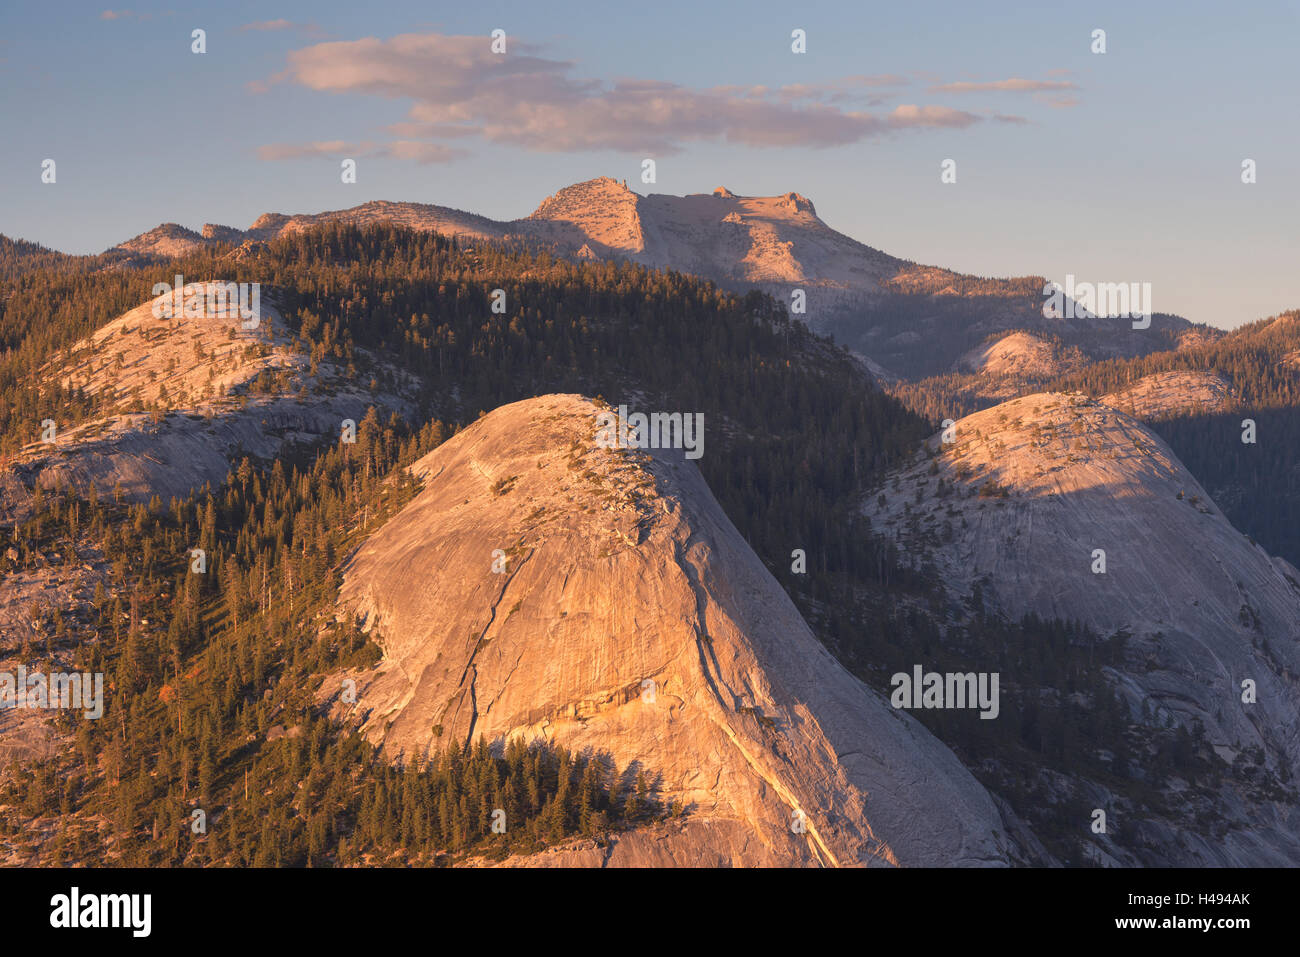 High Sierra mountain scenery from Glacier Point, Yosemite National Park, California, USA. Autumn (October) 2013. - Stock Image